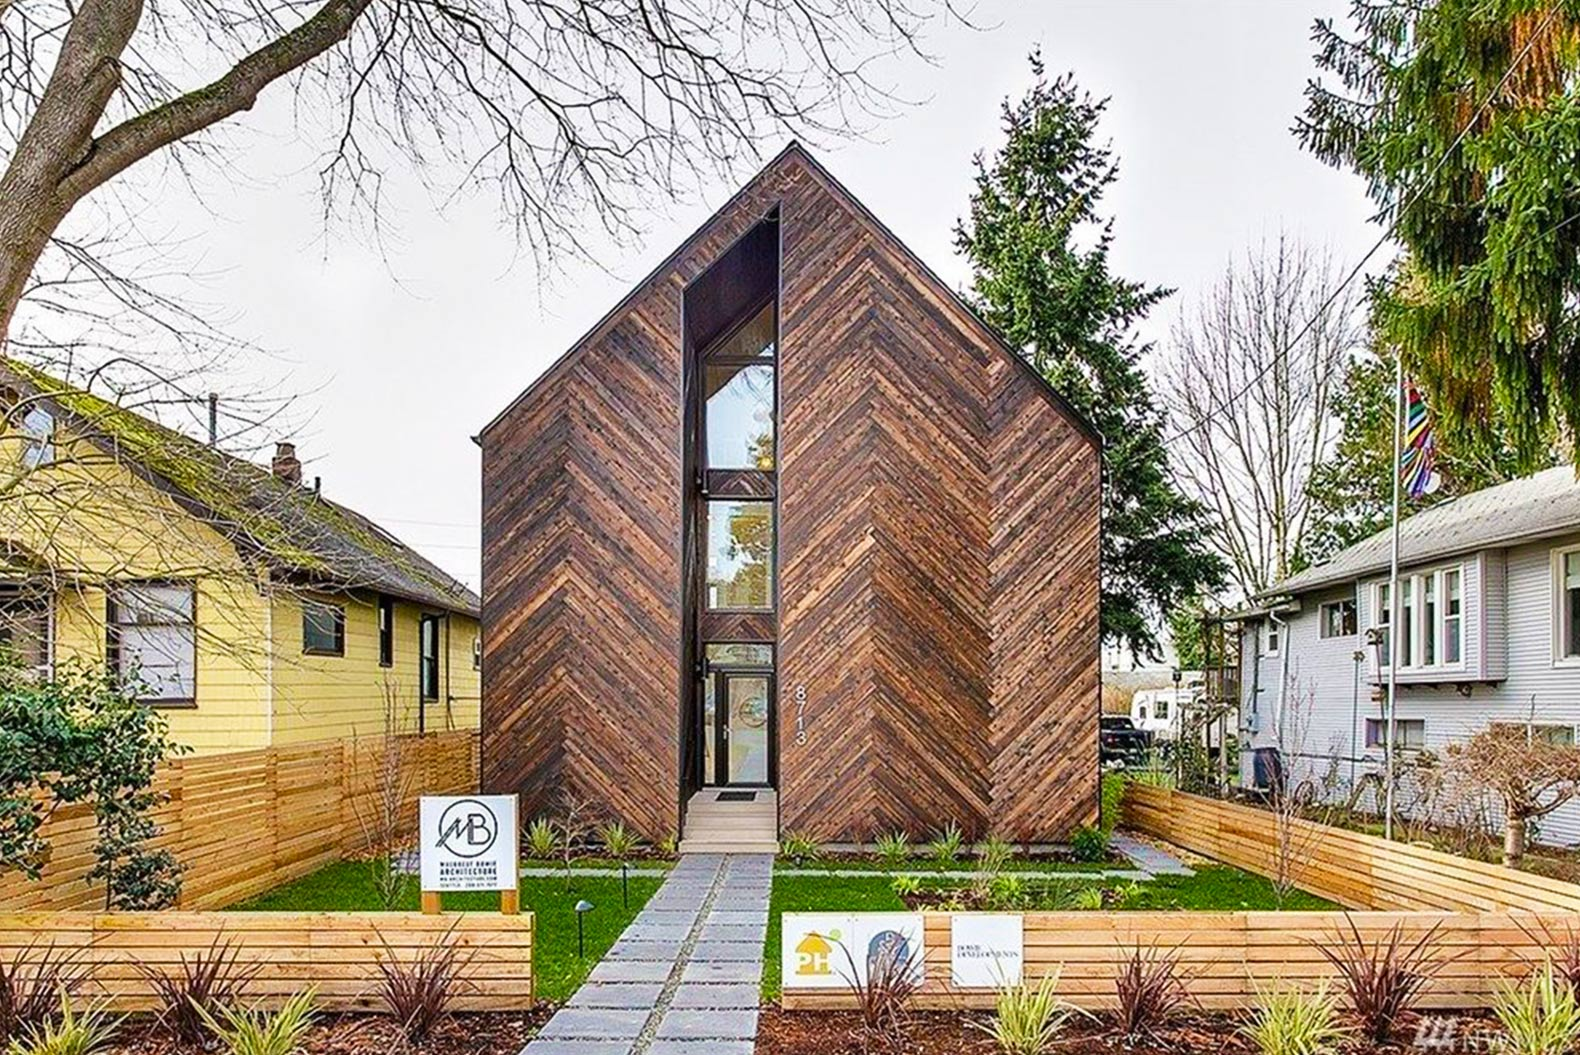 Seattleu0027s Palatine Passive House Consumes 90% Less Energy Than A  Conventional Home